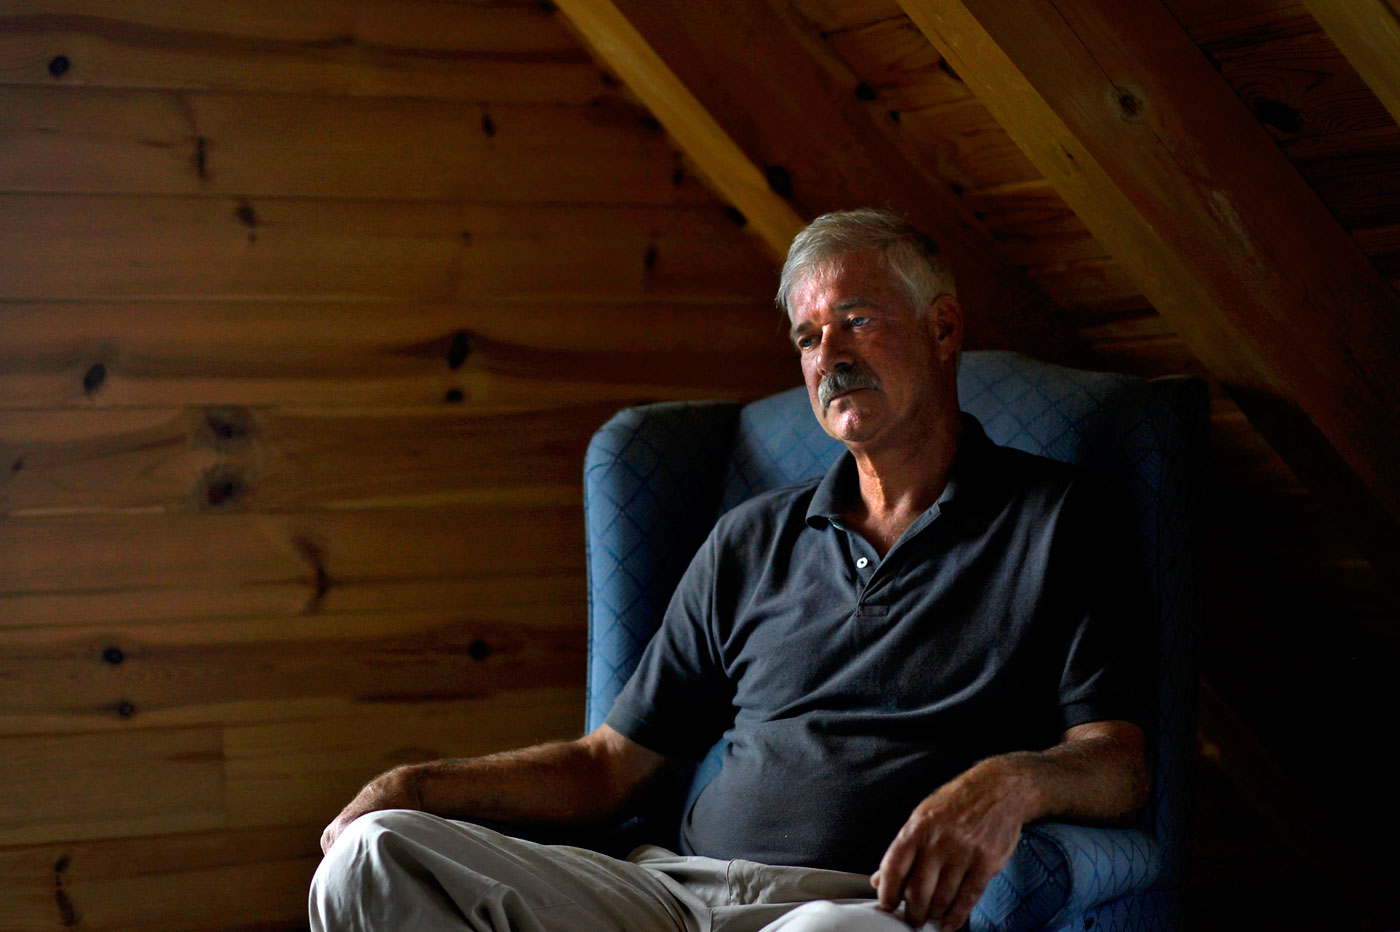 Paul Traub, 55, is going public with allegations that he was sexually abused by Catholic priests as a boy growing up in Virginia Beach. He poses for a portrait at his home in Lovettsville, Va.